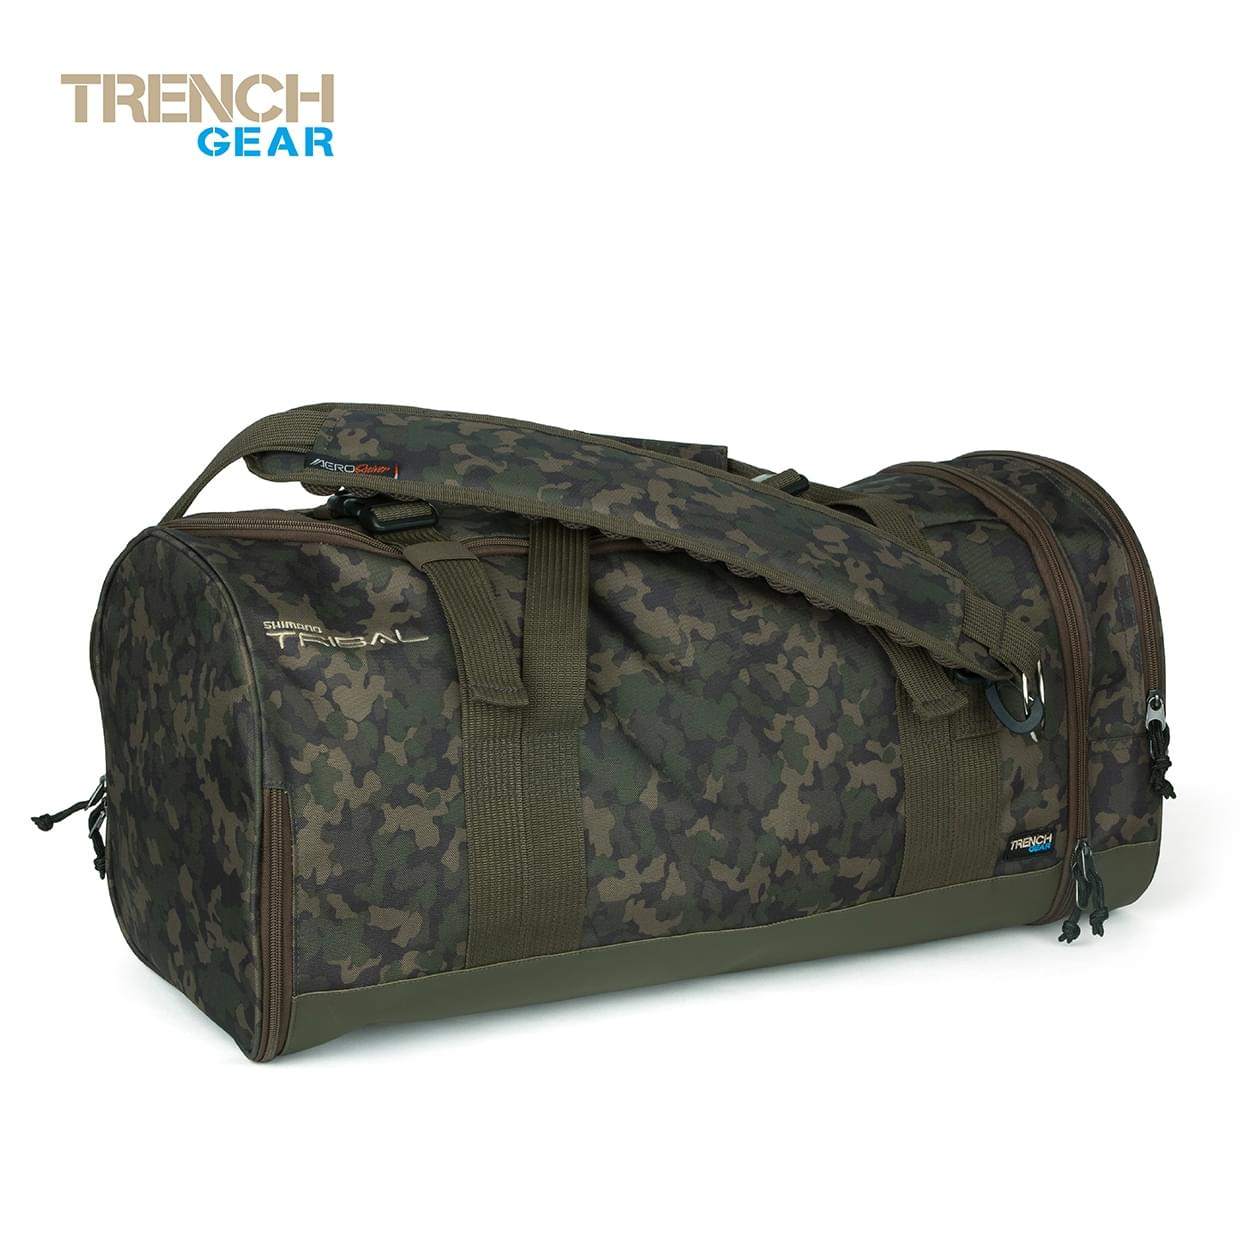 Shimano Trench Gear Clothing Bag